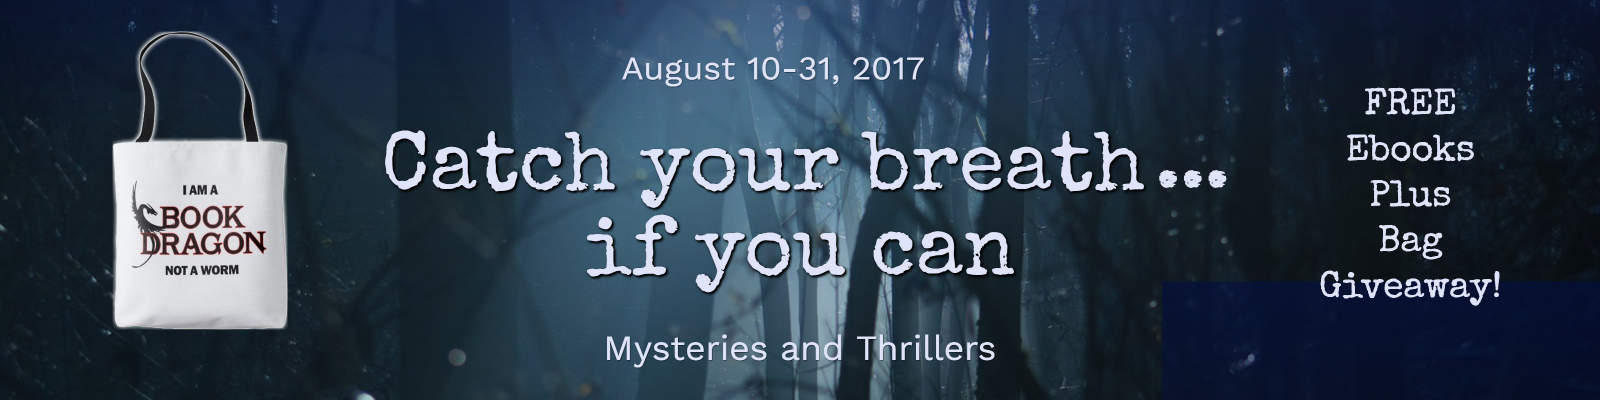 Catch Your Breath! Mysteries and Thrillers